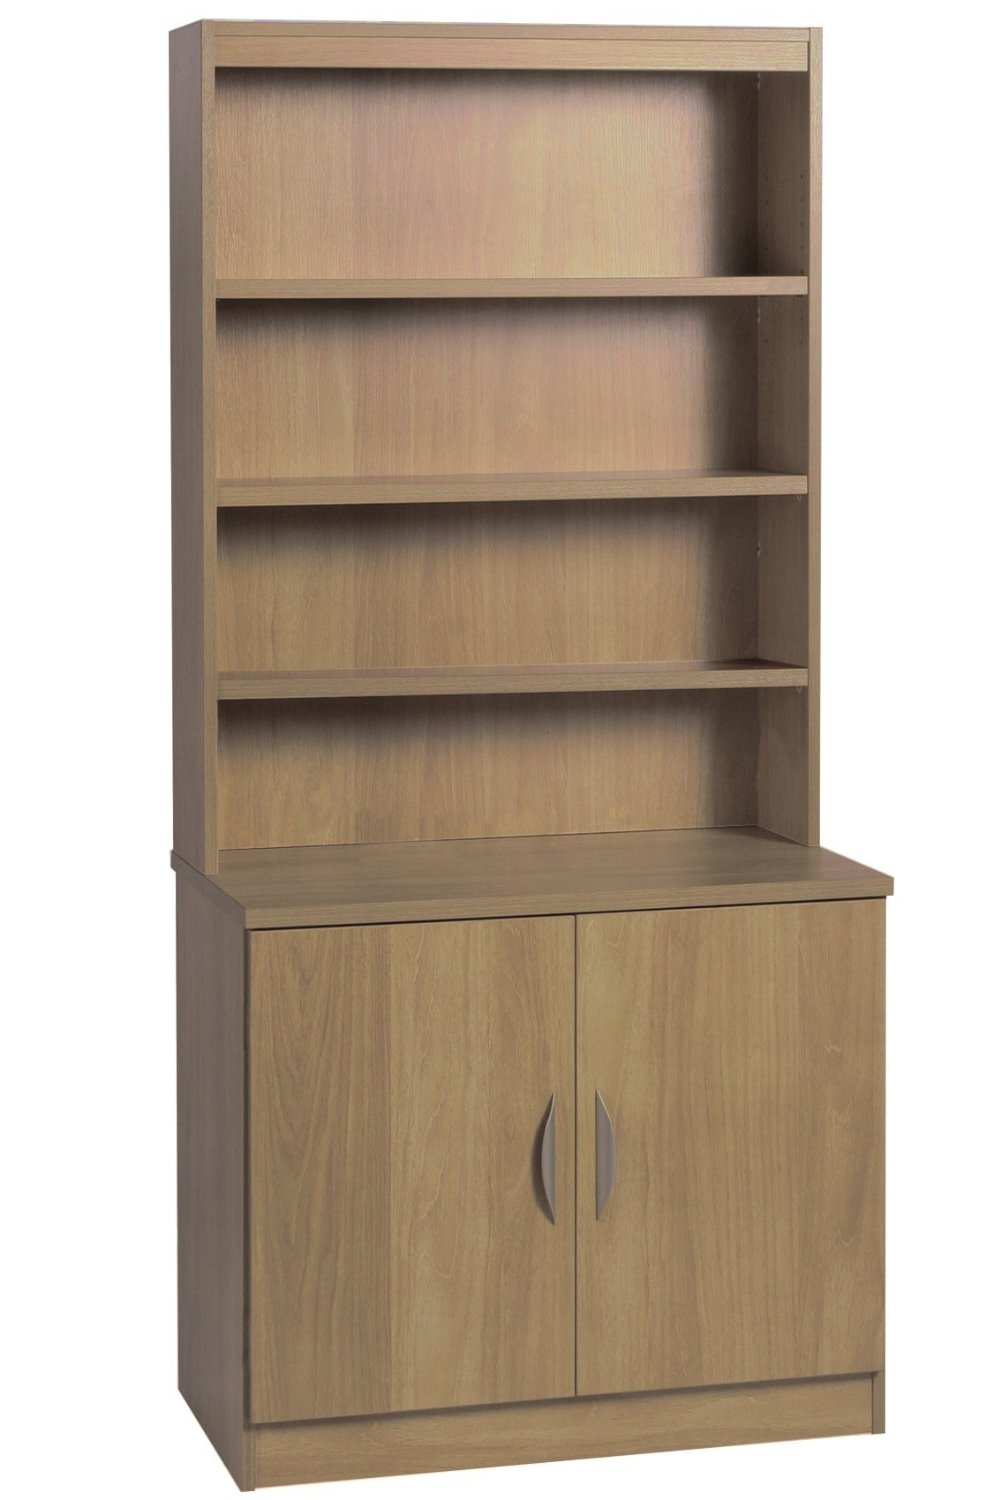 DESK HEIGHT CUPBOARD 850MM WIDE WITH HUTCH